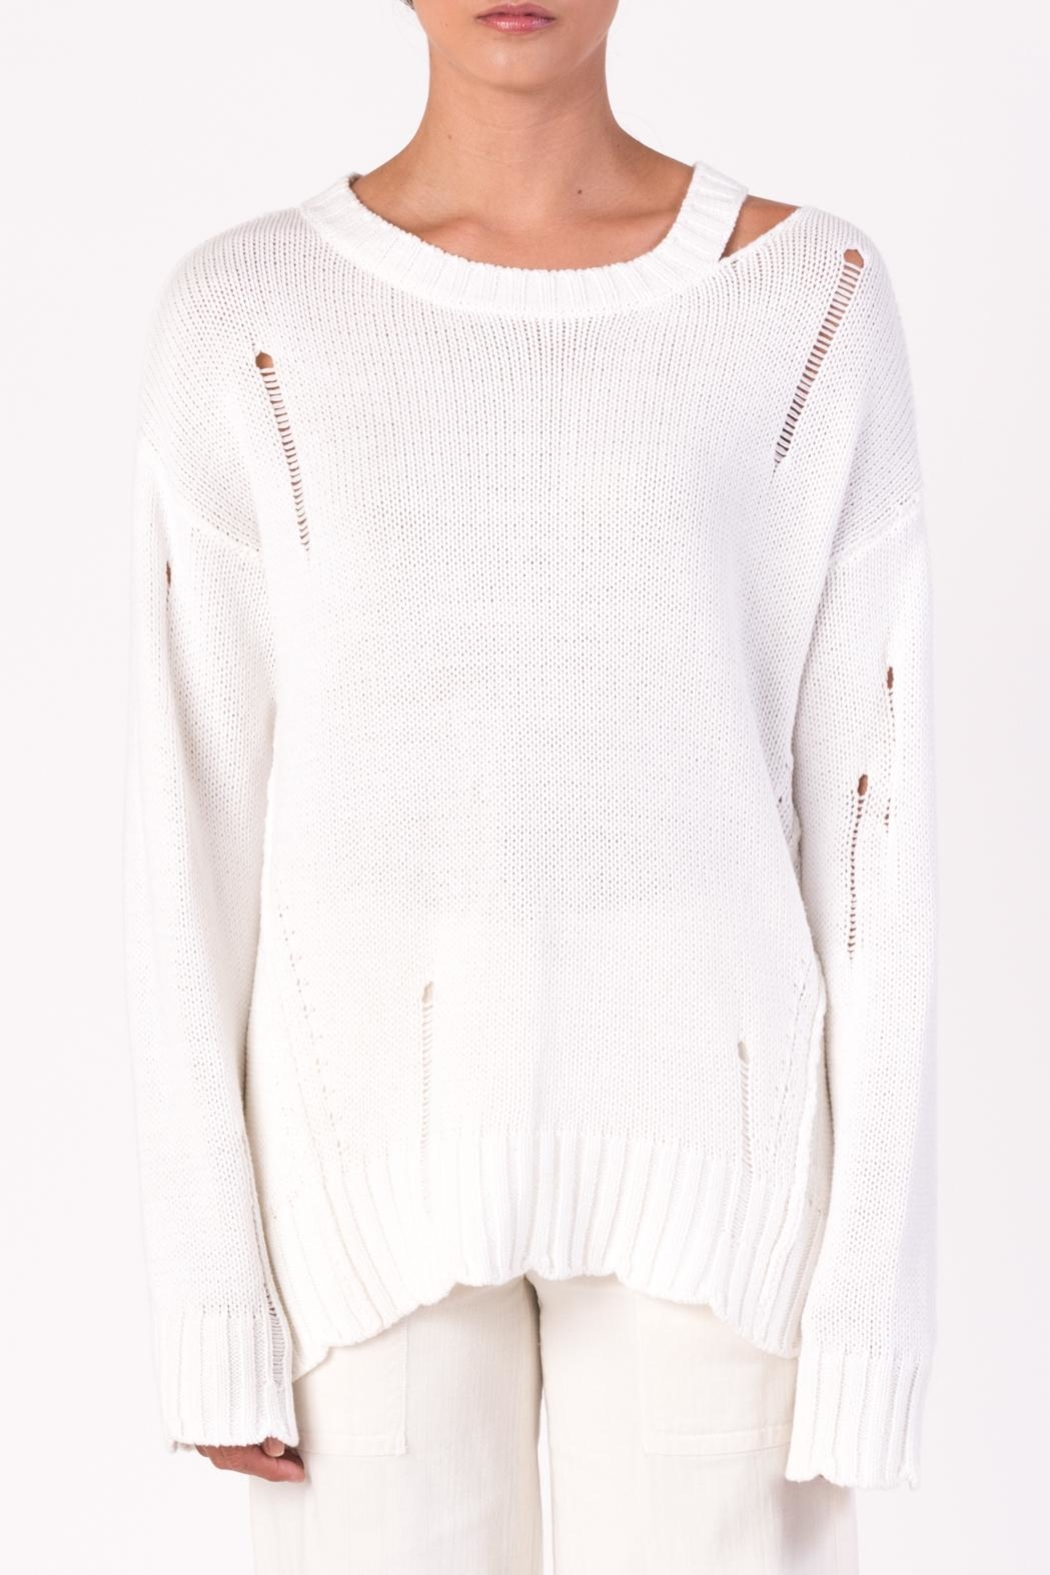 Margaret O'Leary Cotton Grunge Sweater - Main Image